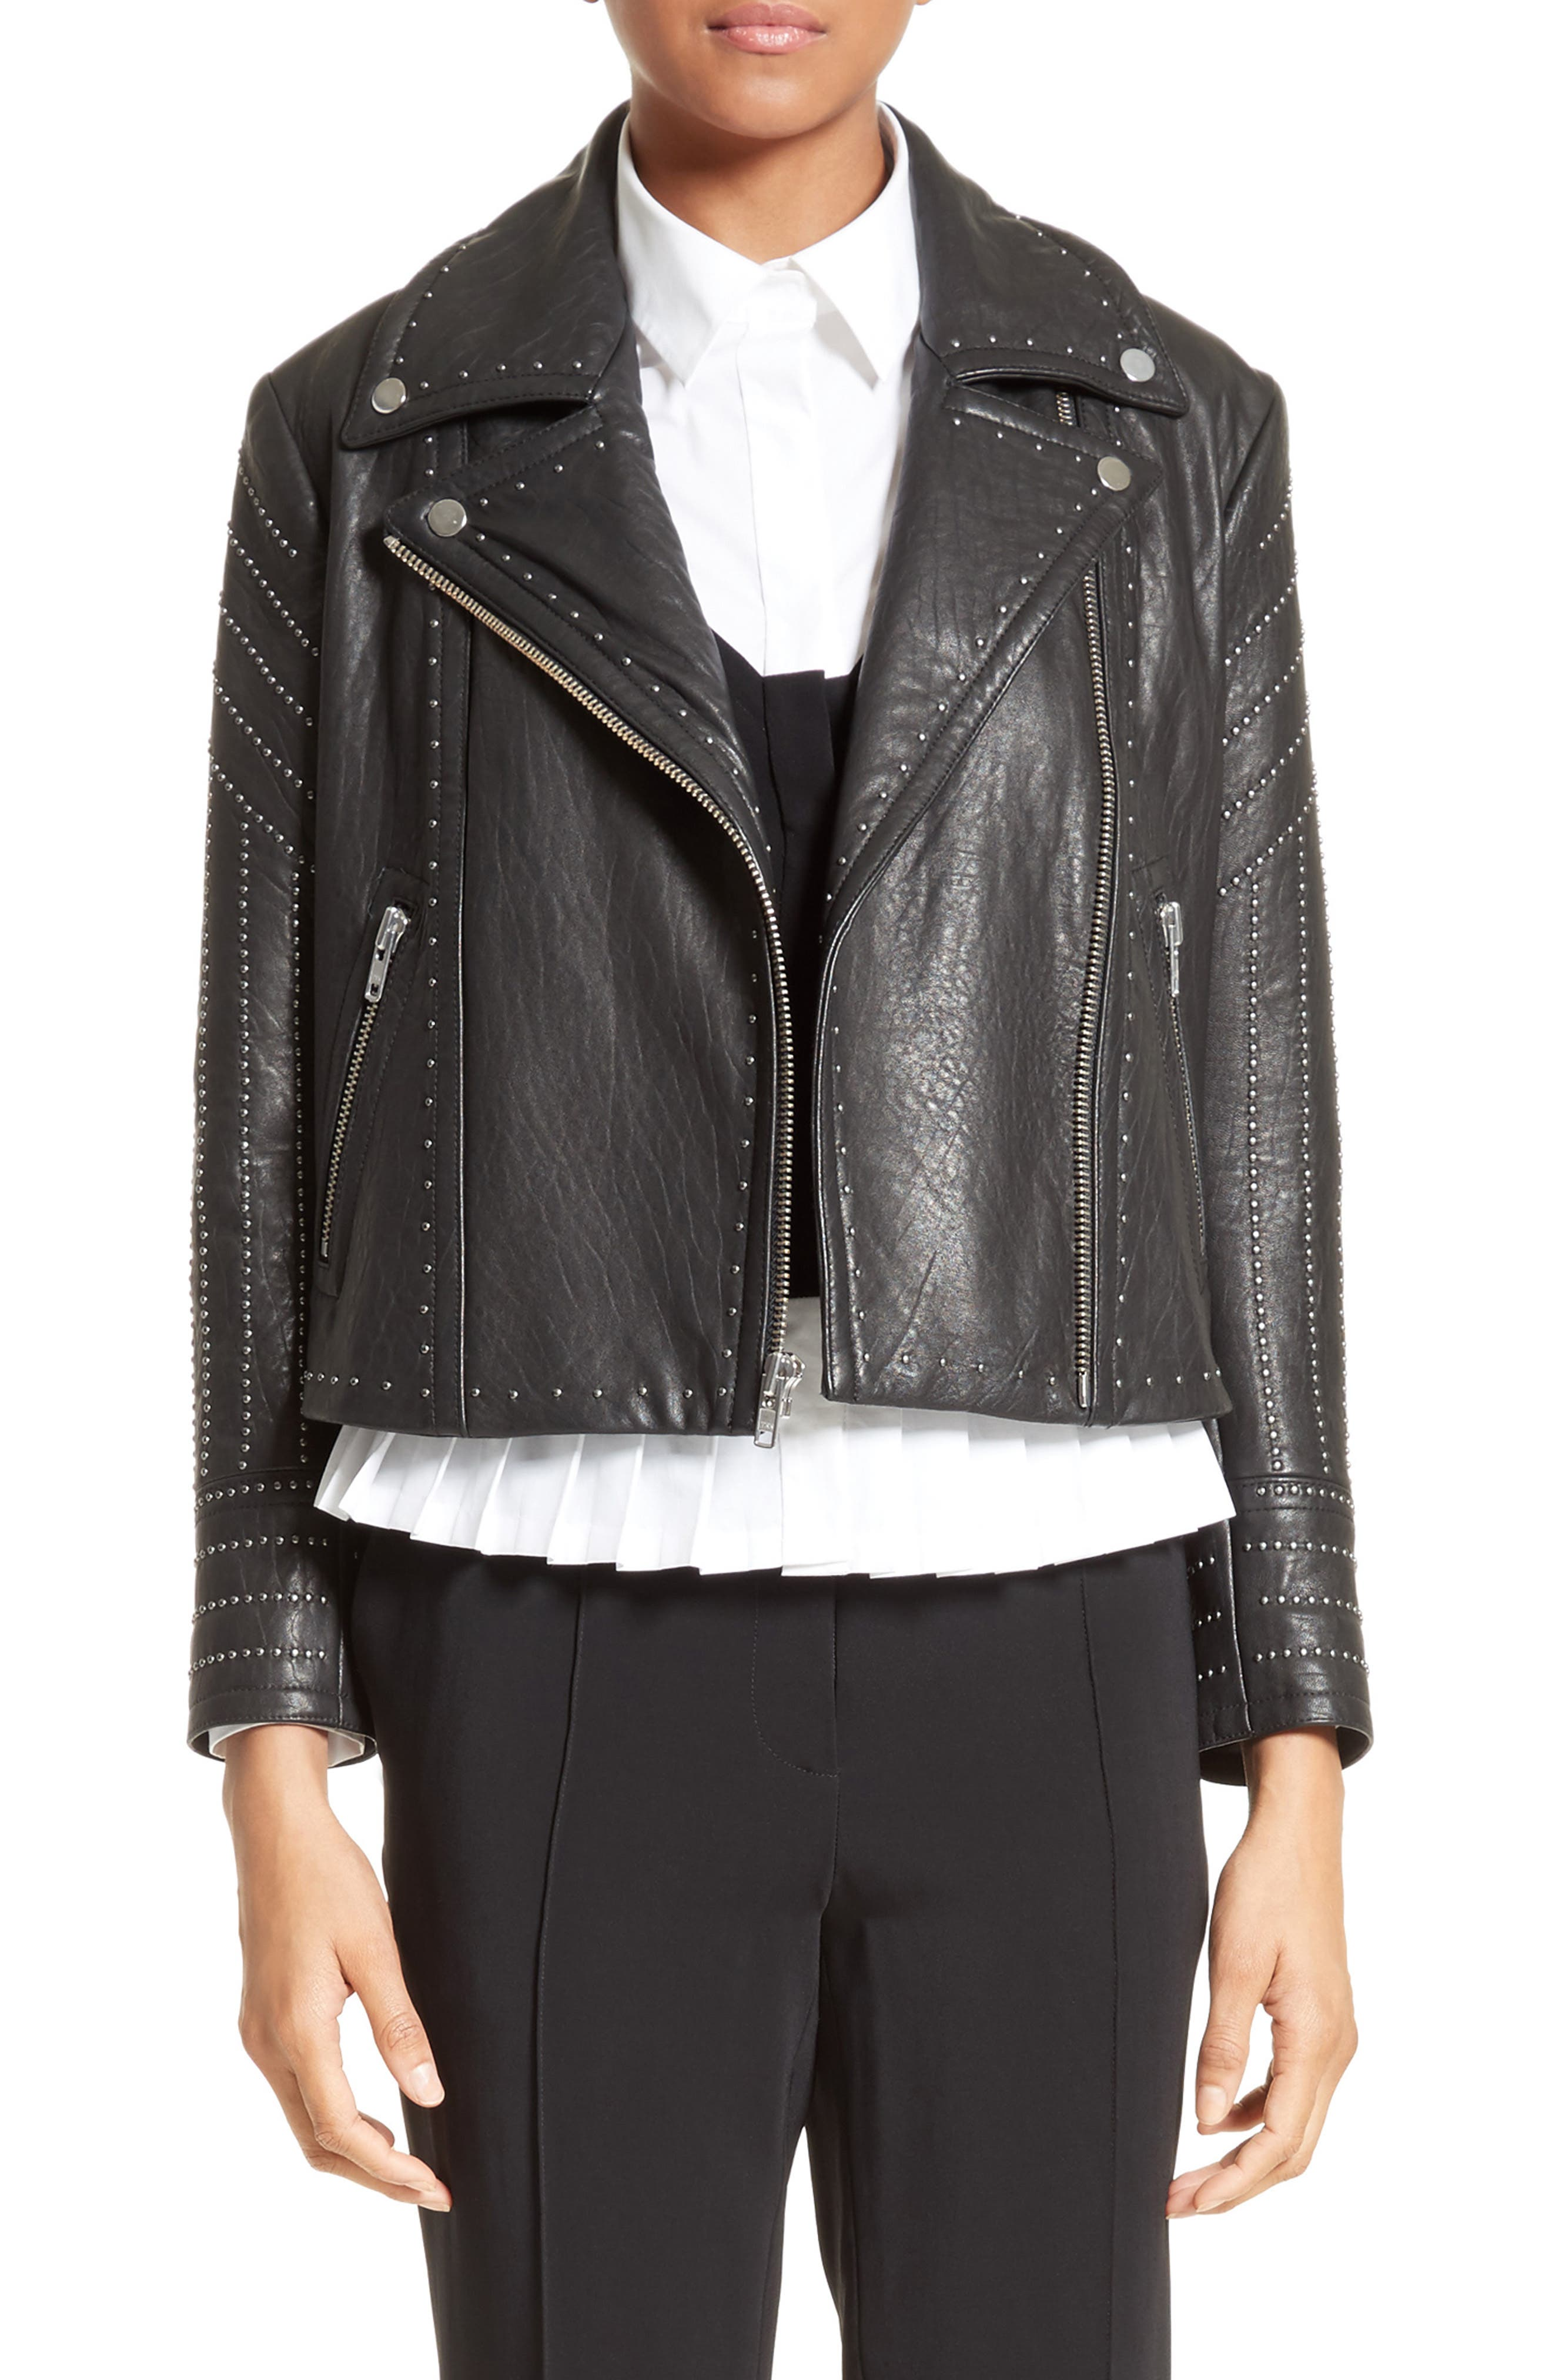 Yigal Azrouël Studded Leather Jacket